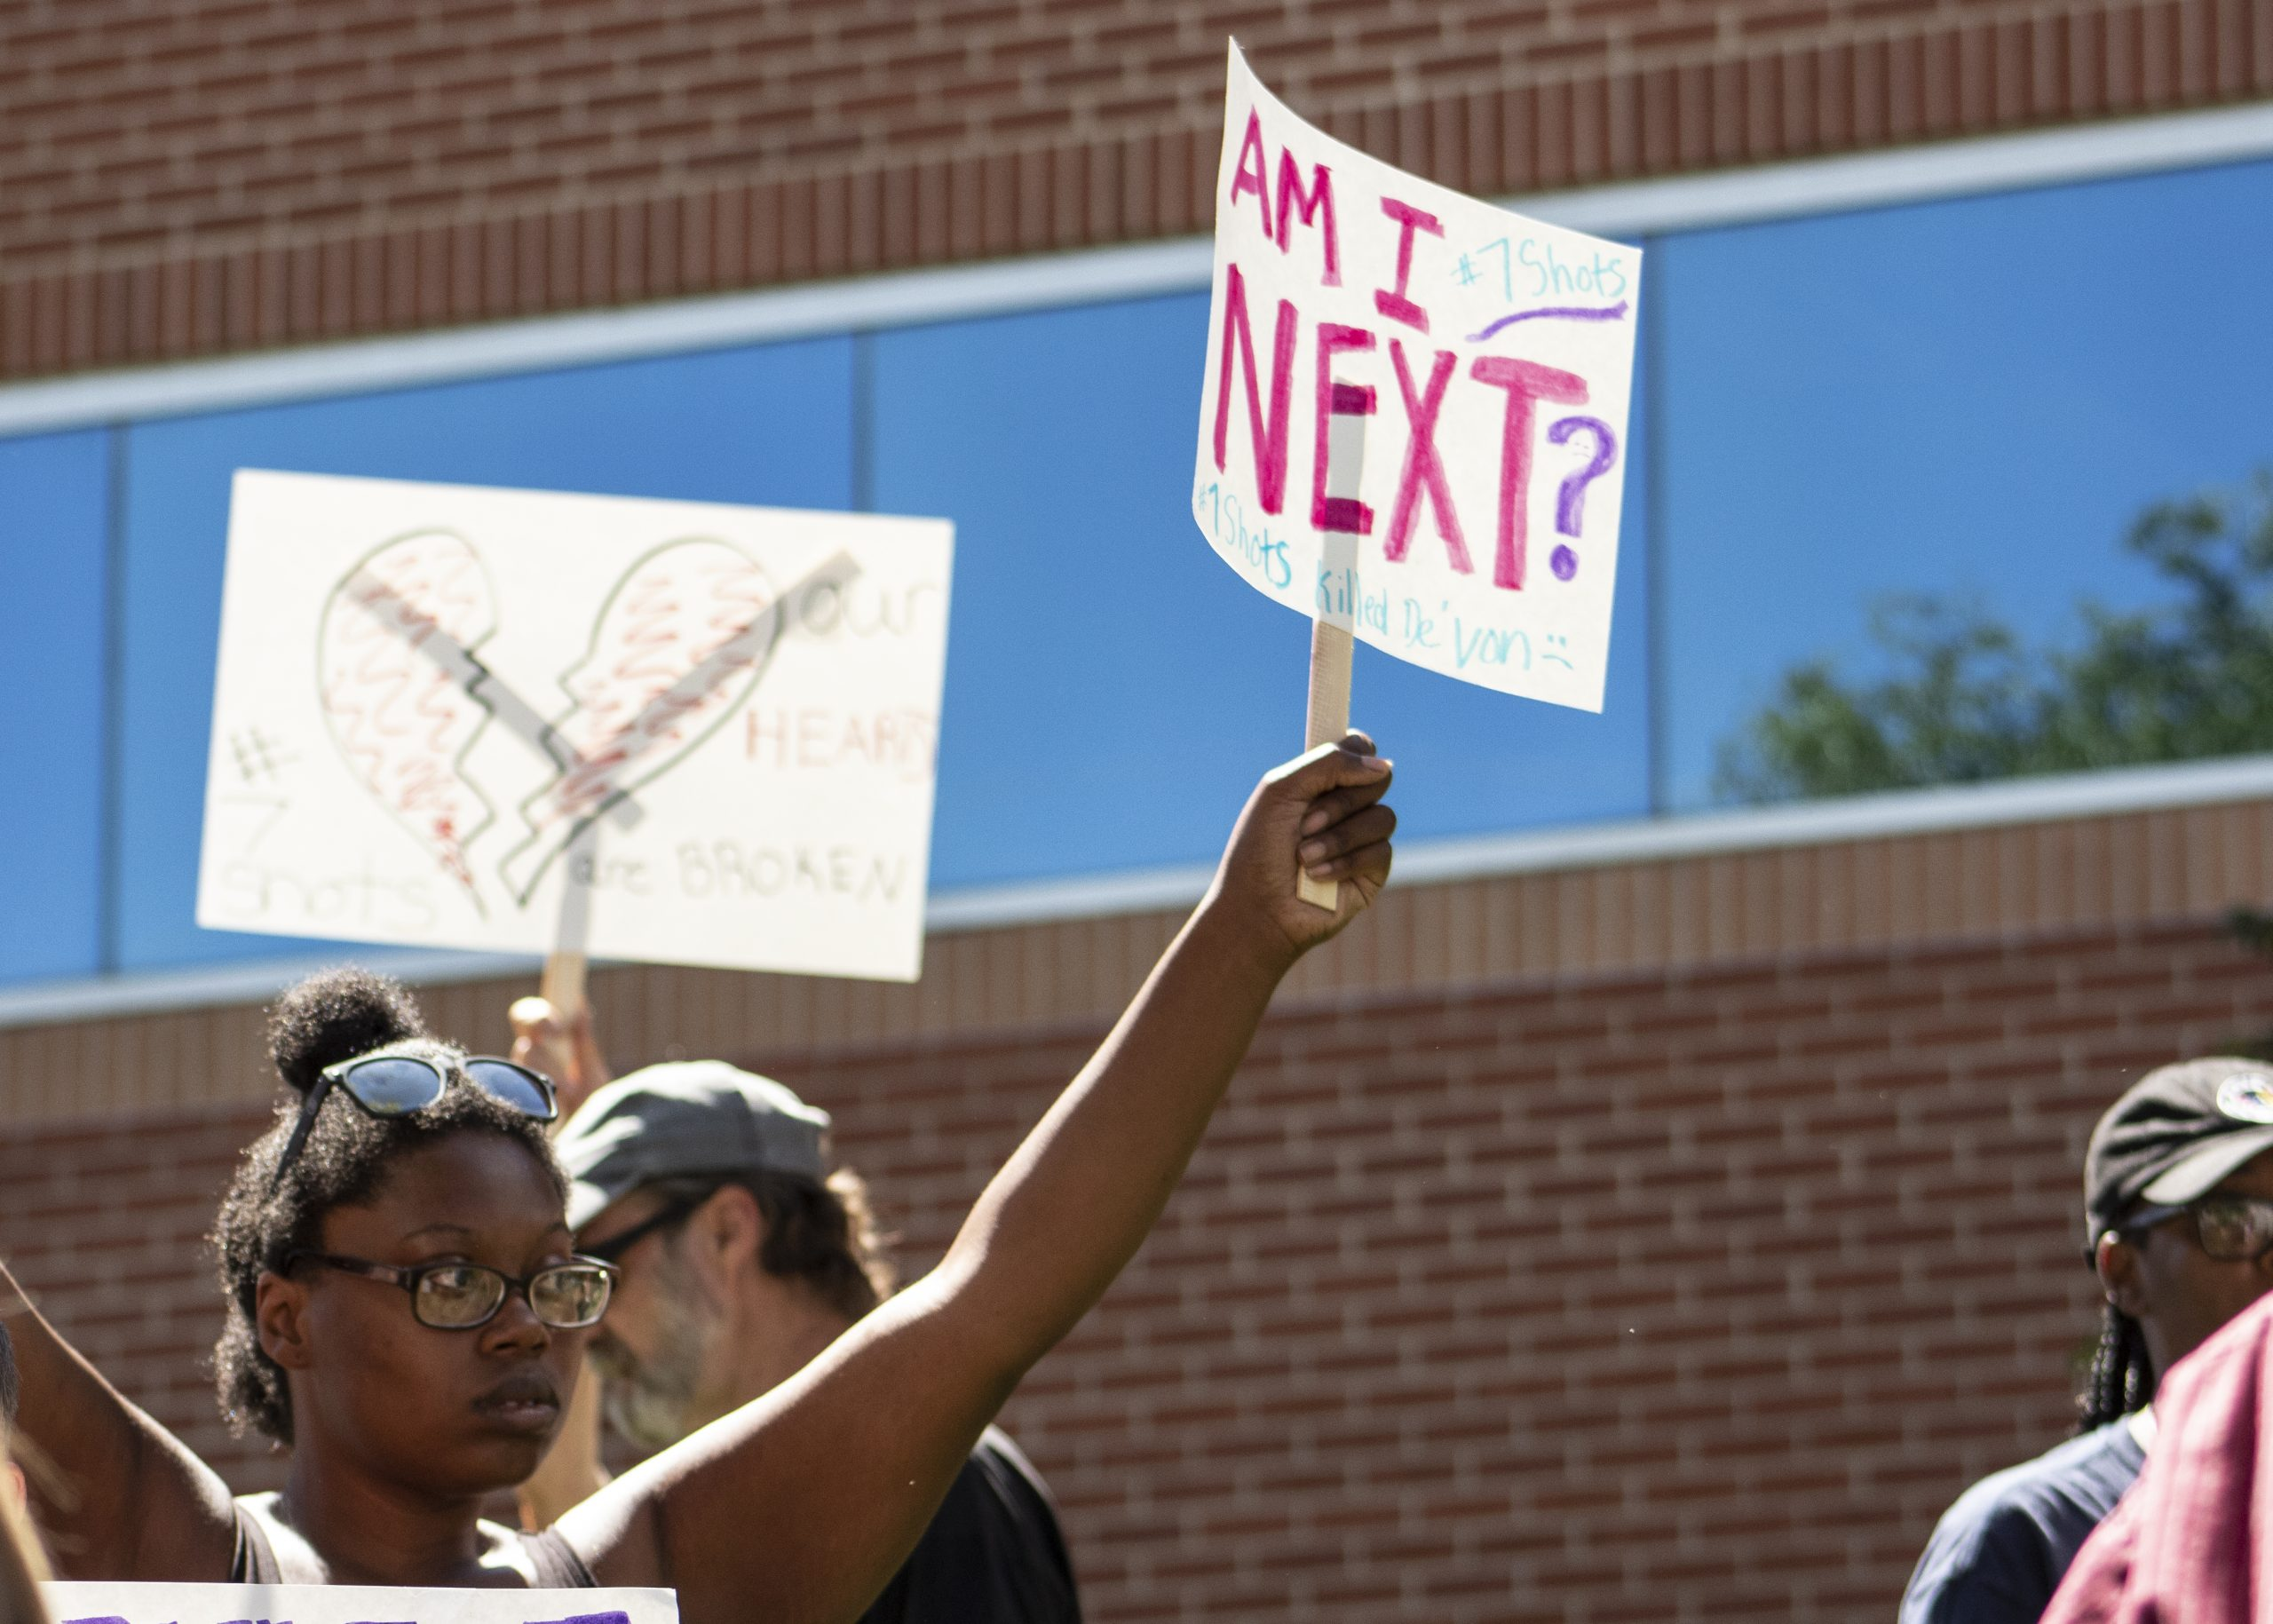 """A young woman raises a sign that reads """"Am I Next?"""""""